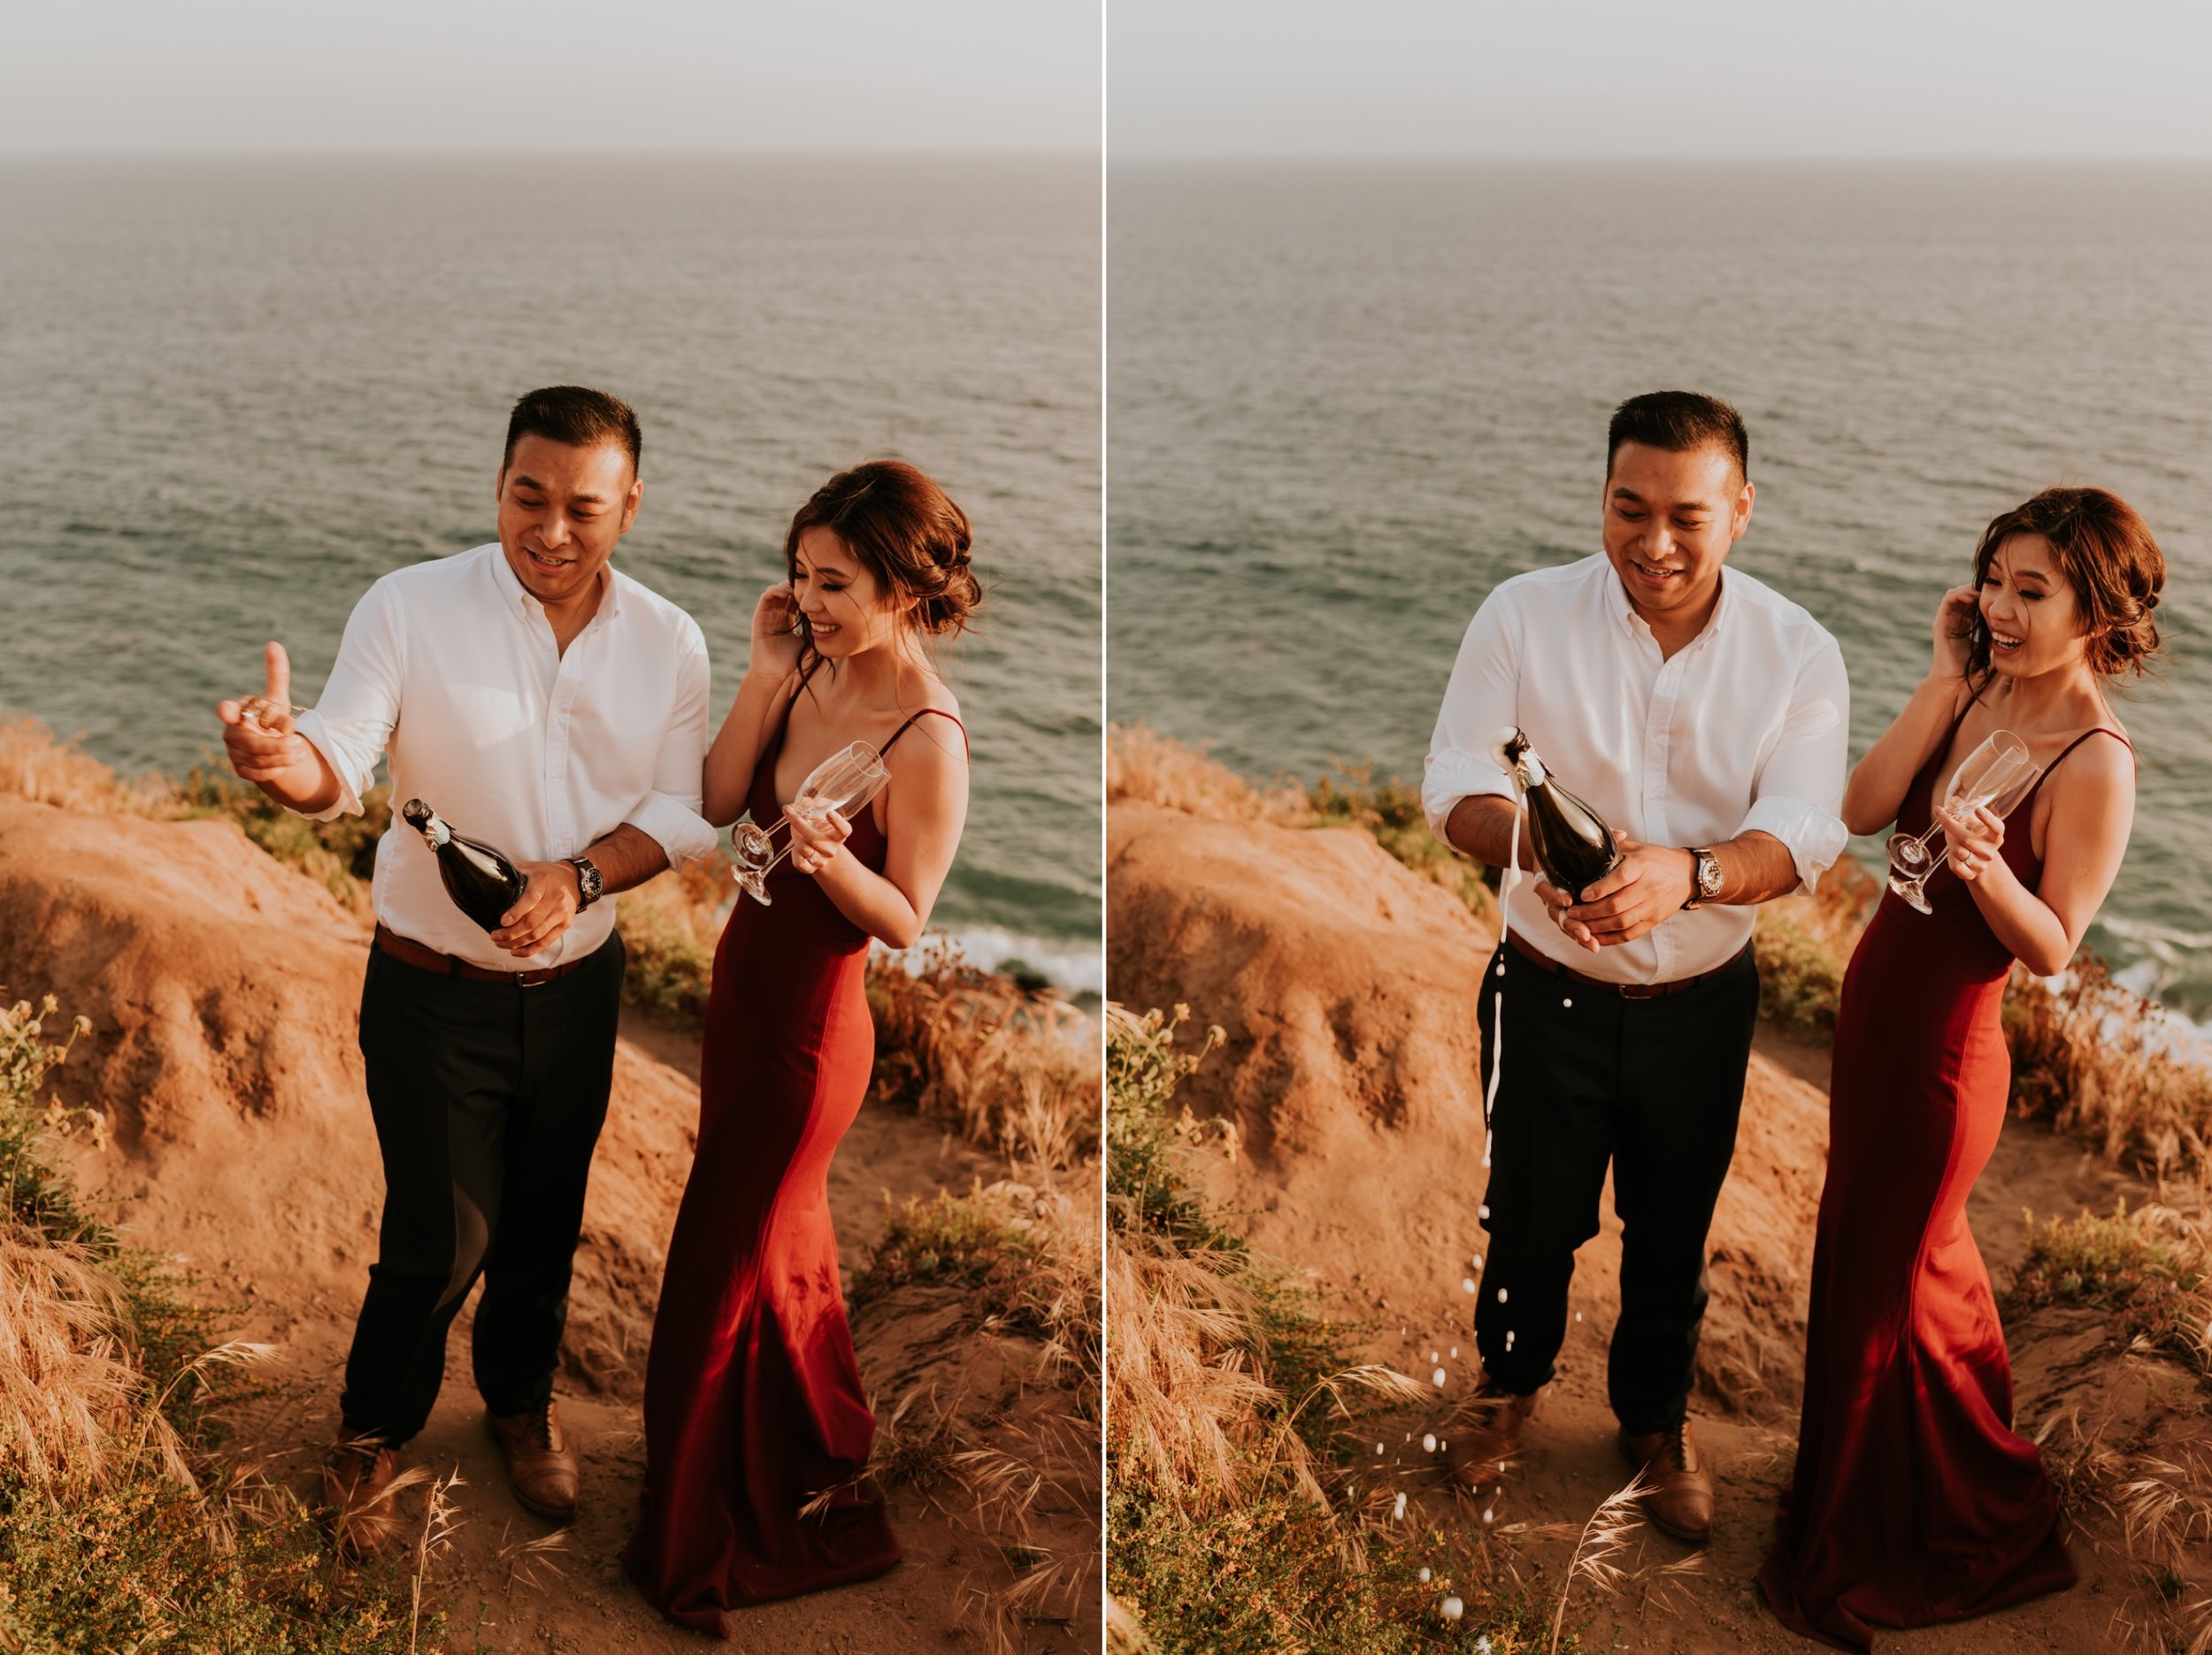 Point Dume, Malibu Engagement Session | Carrie Rogers Photography | Champagne Pop |  Malibu Wedding Photographer | Malibu Cliffside Elopement | #elopement #couples